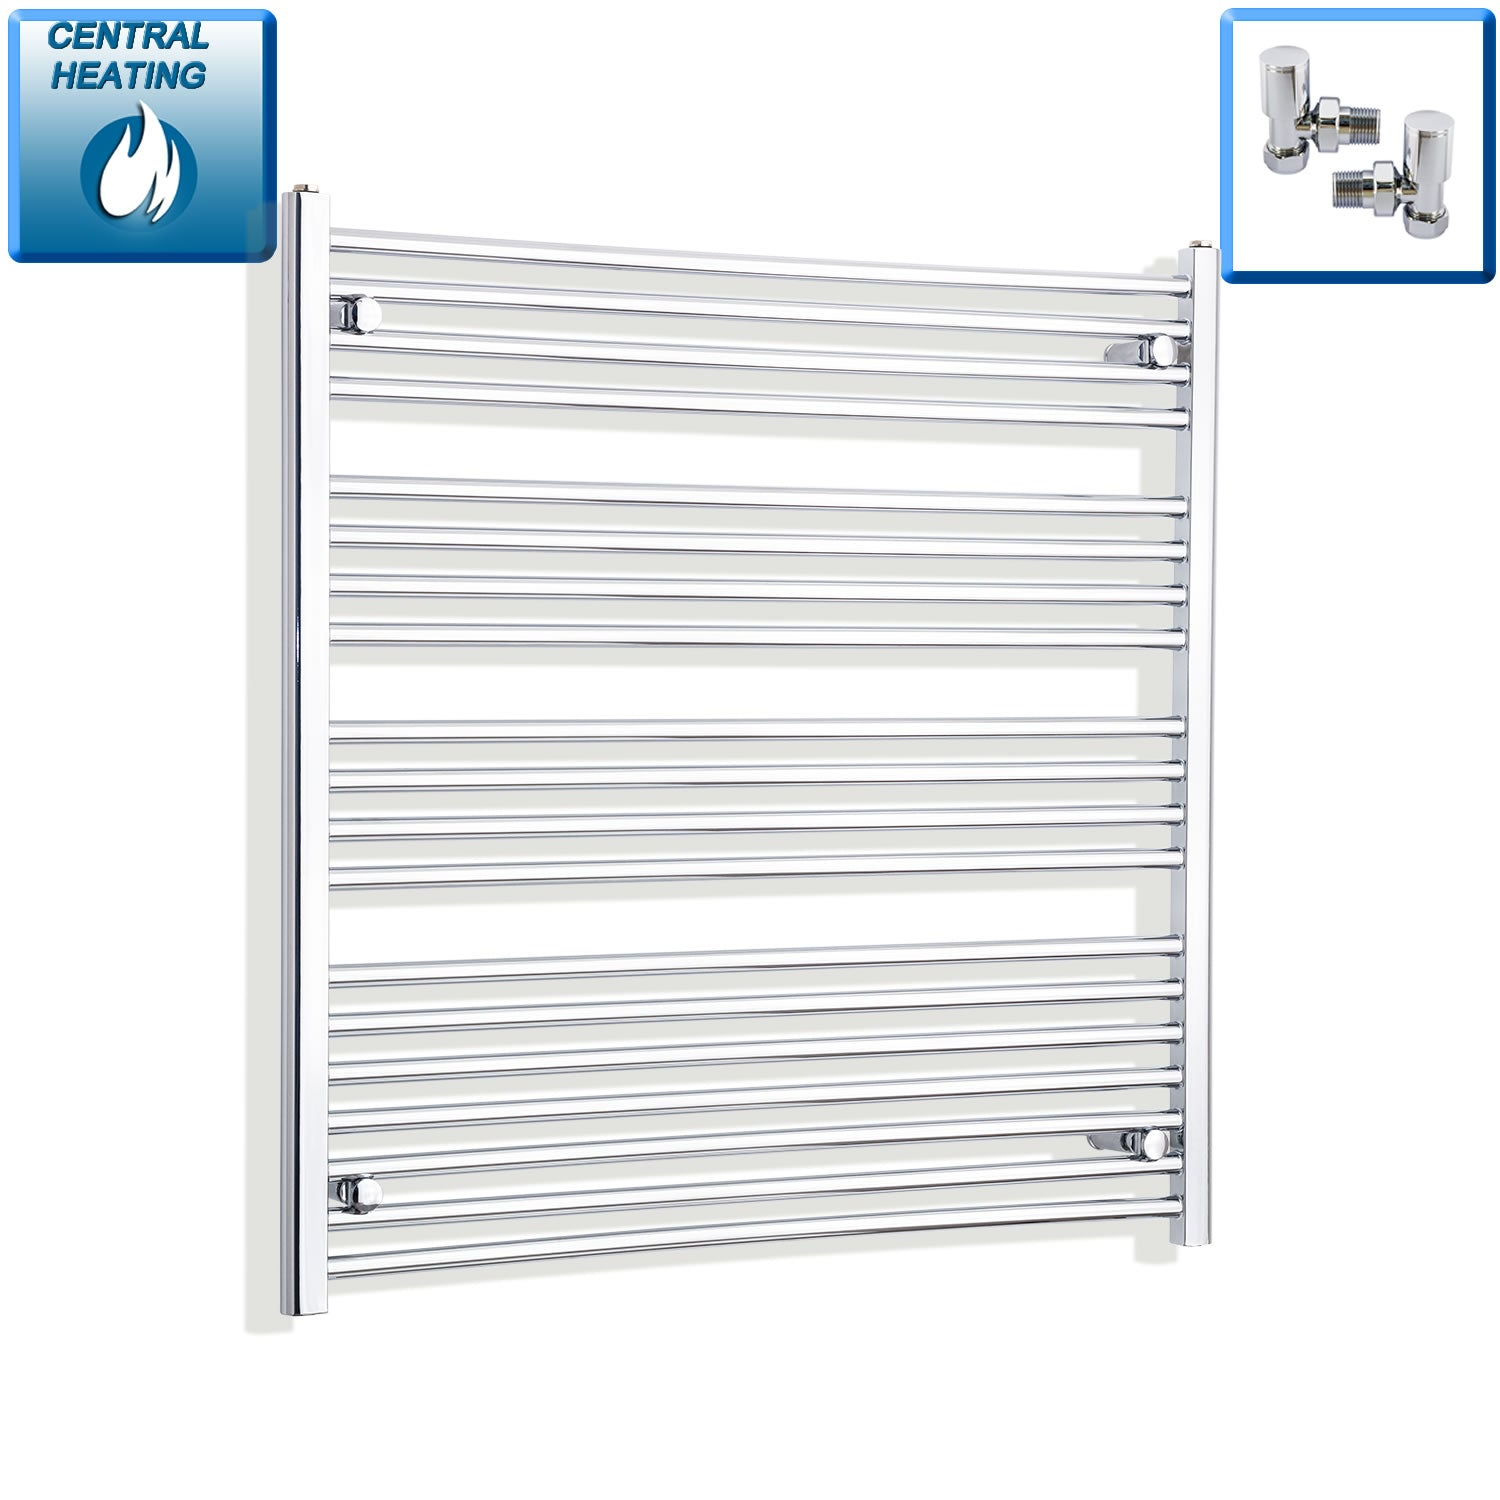 1200mm Wide 1000mm High Chrome Towel Rail Radiator With Angled Valve